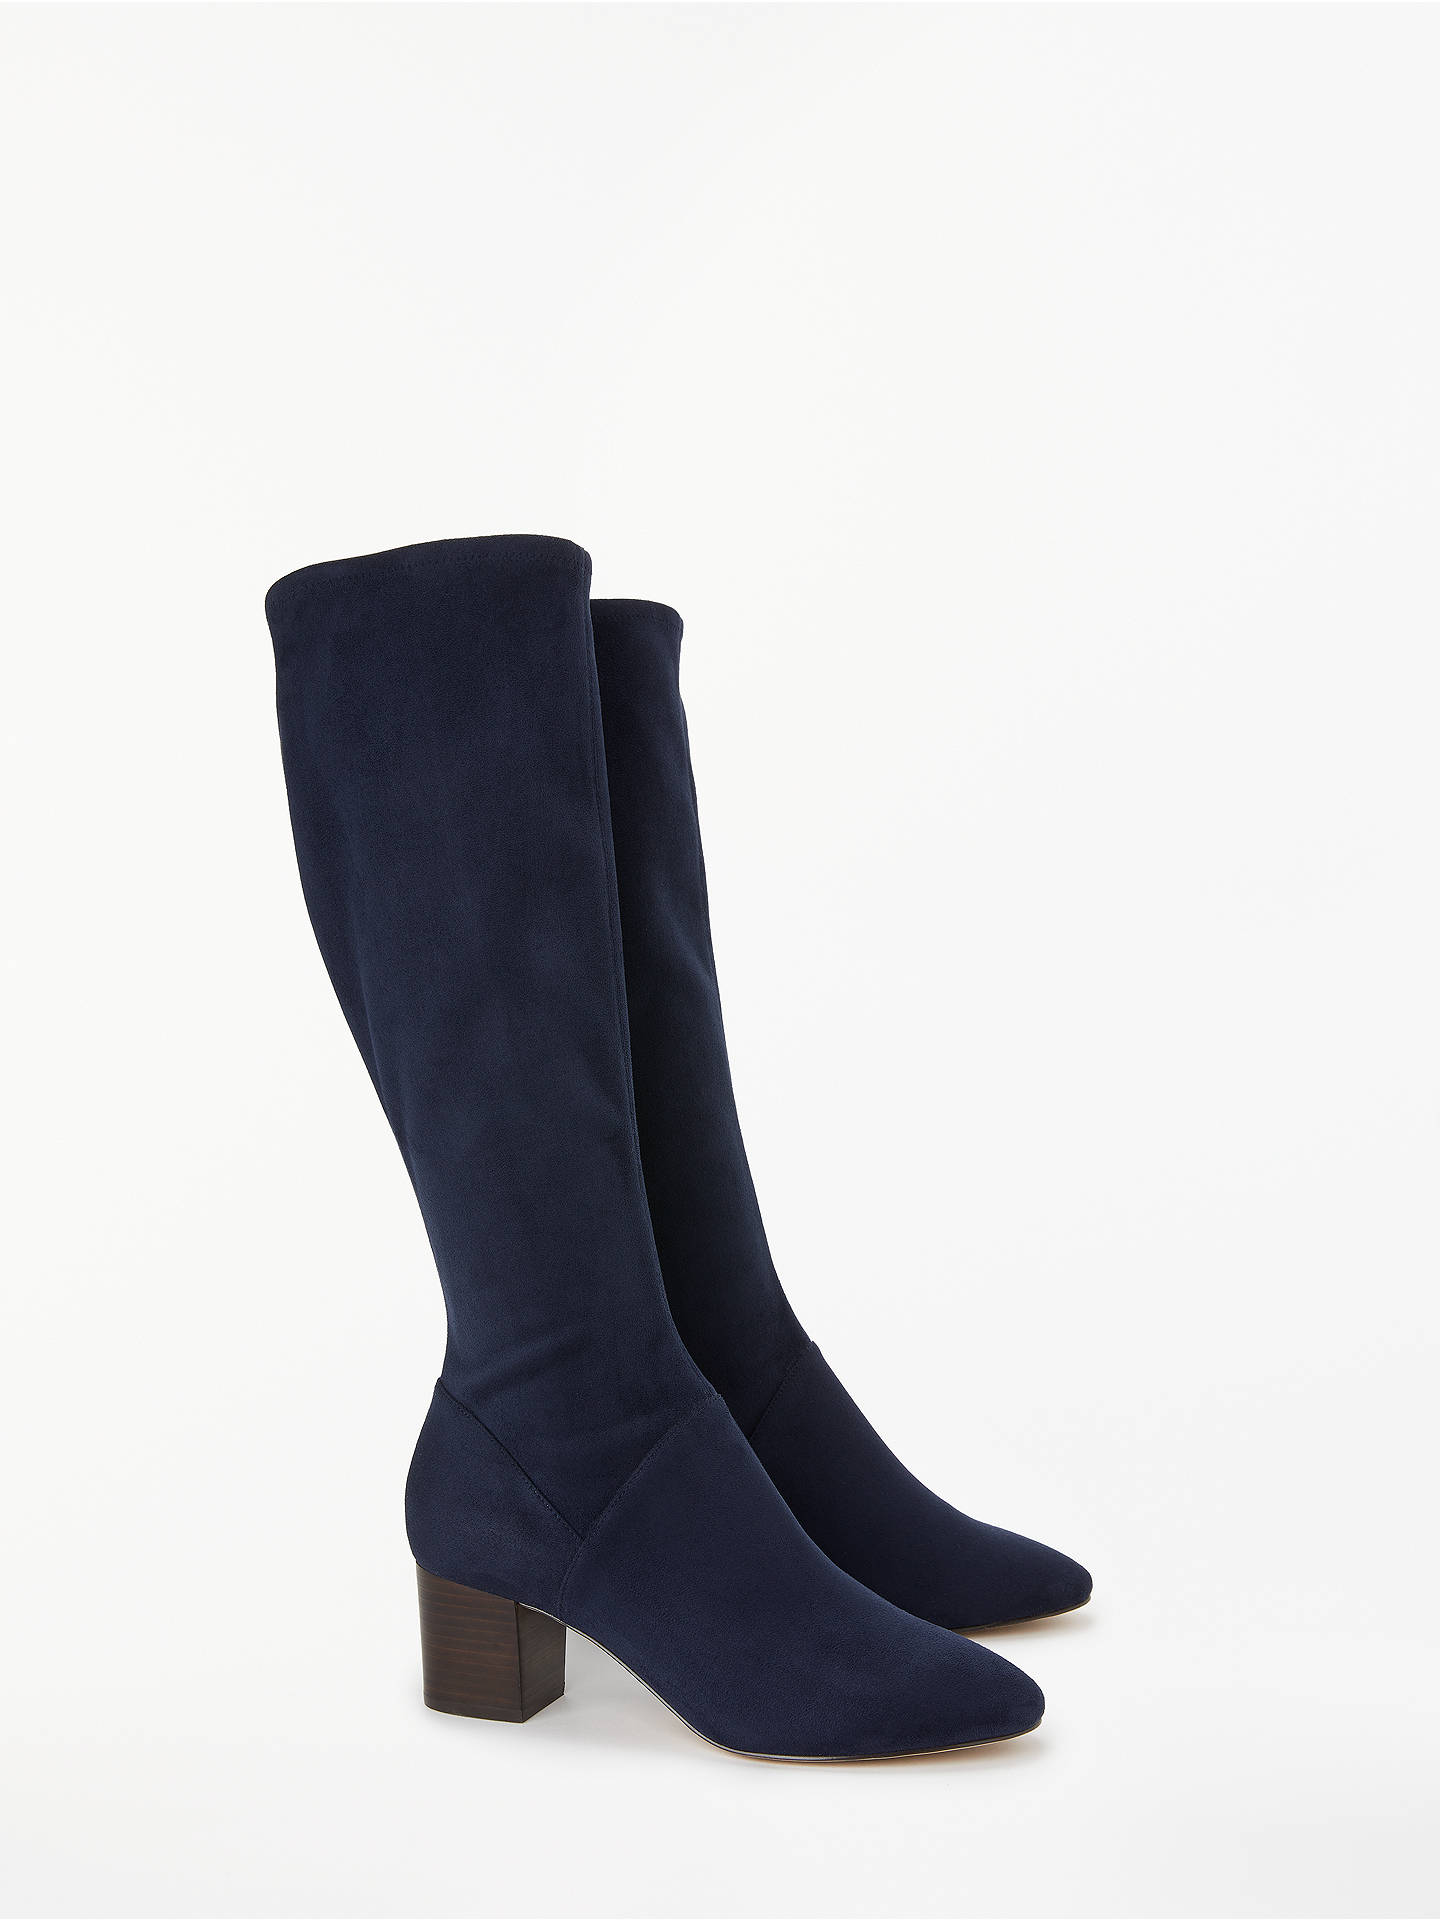 BuyBoden Round Toe Stretch Boots, Navy, 5 Online at johnlewis.com